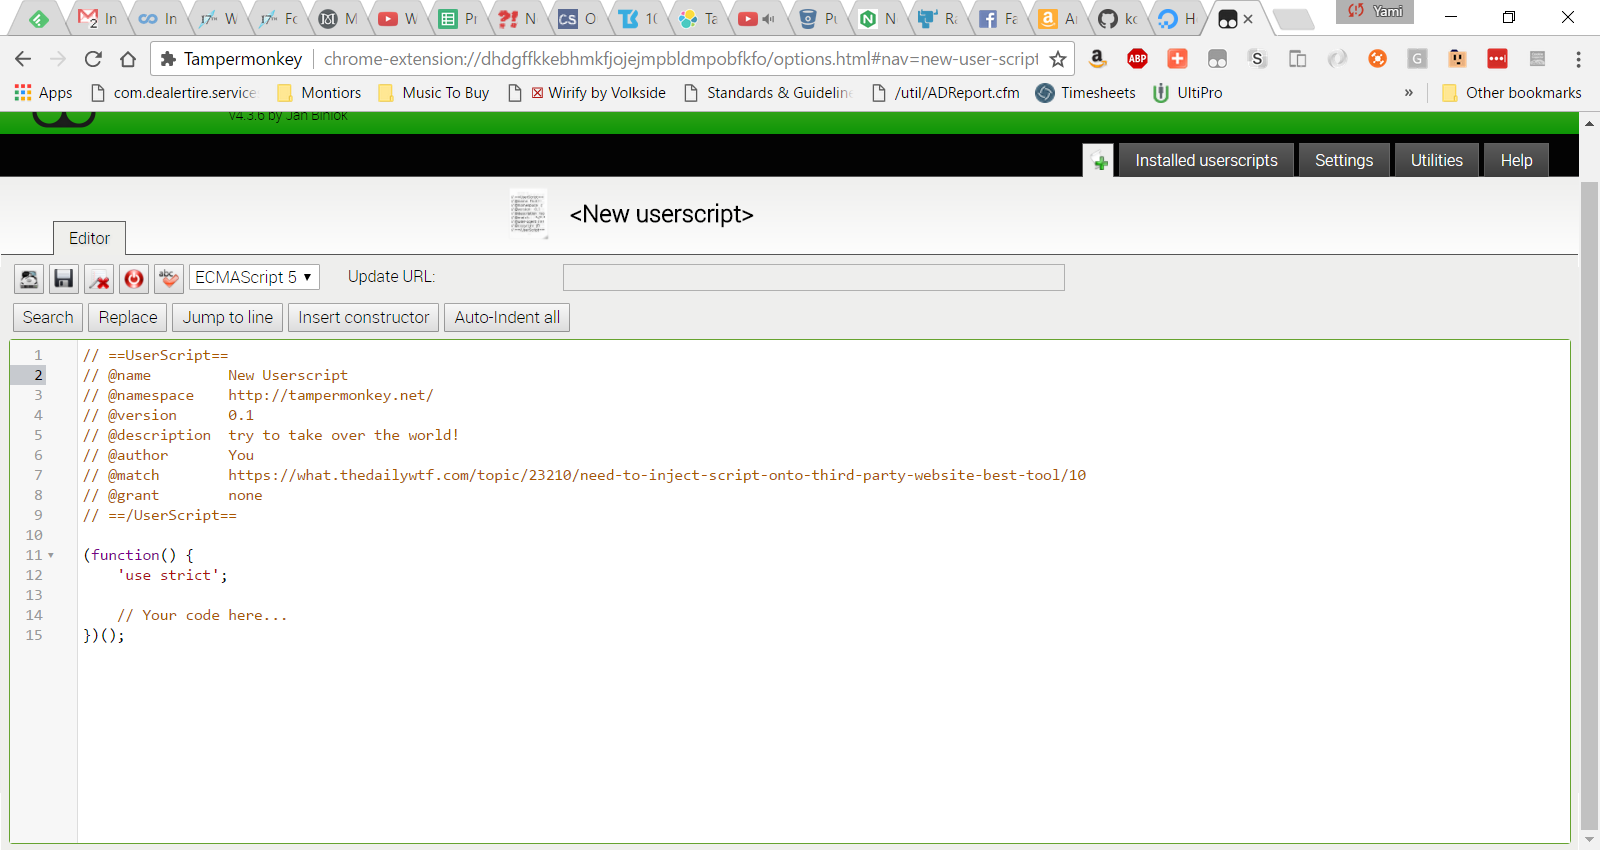 Need to inject script onto third-party website-- best tool? - What